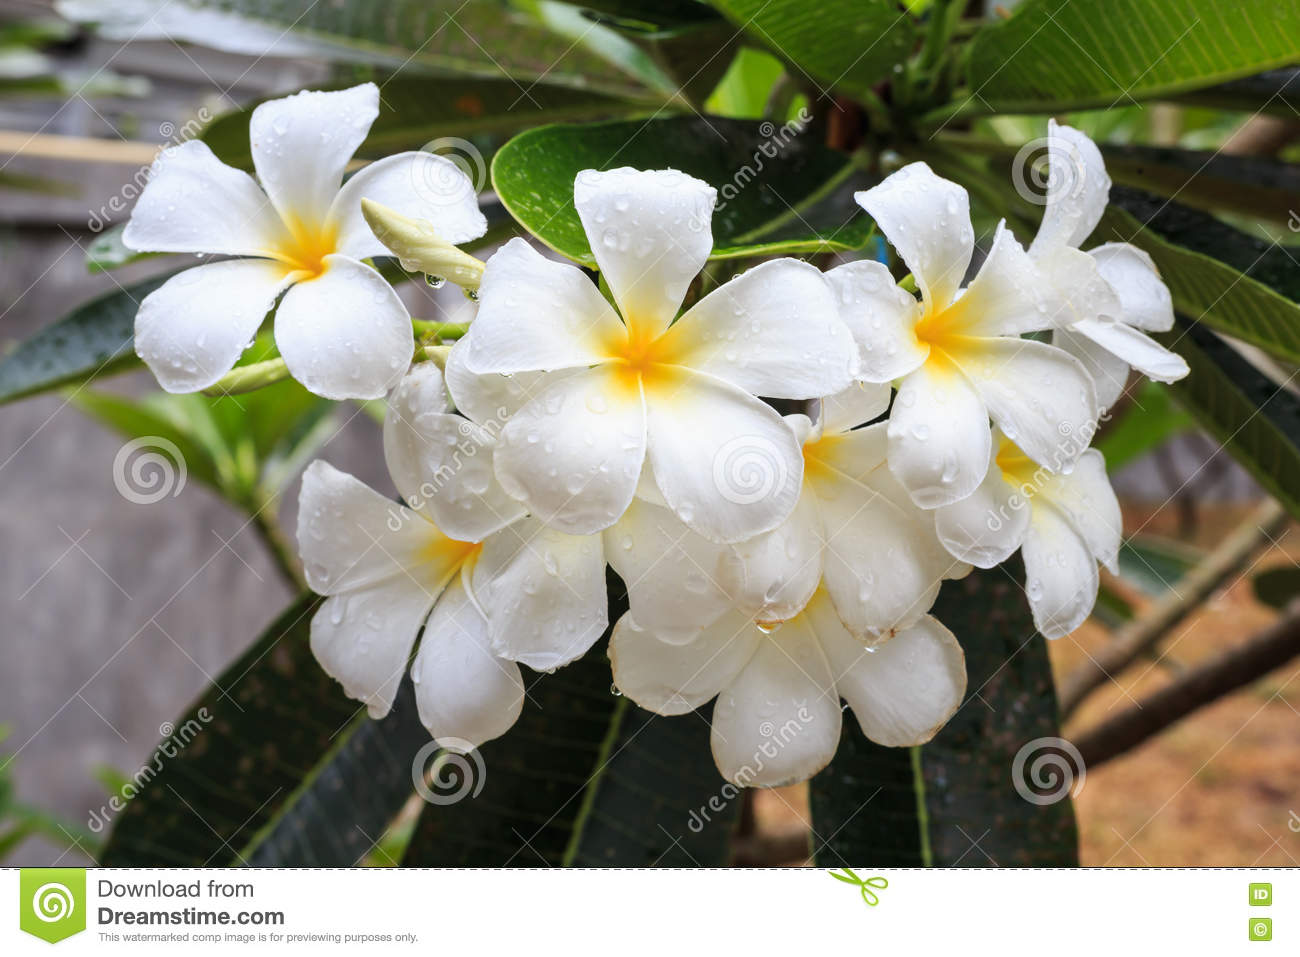 White and yellow tropical flowers frangipani plumeria on tree white and yellow tropical flowers frangipani plumeria on tree mightylinksfo